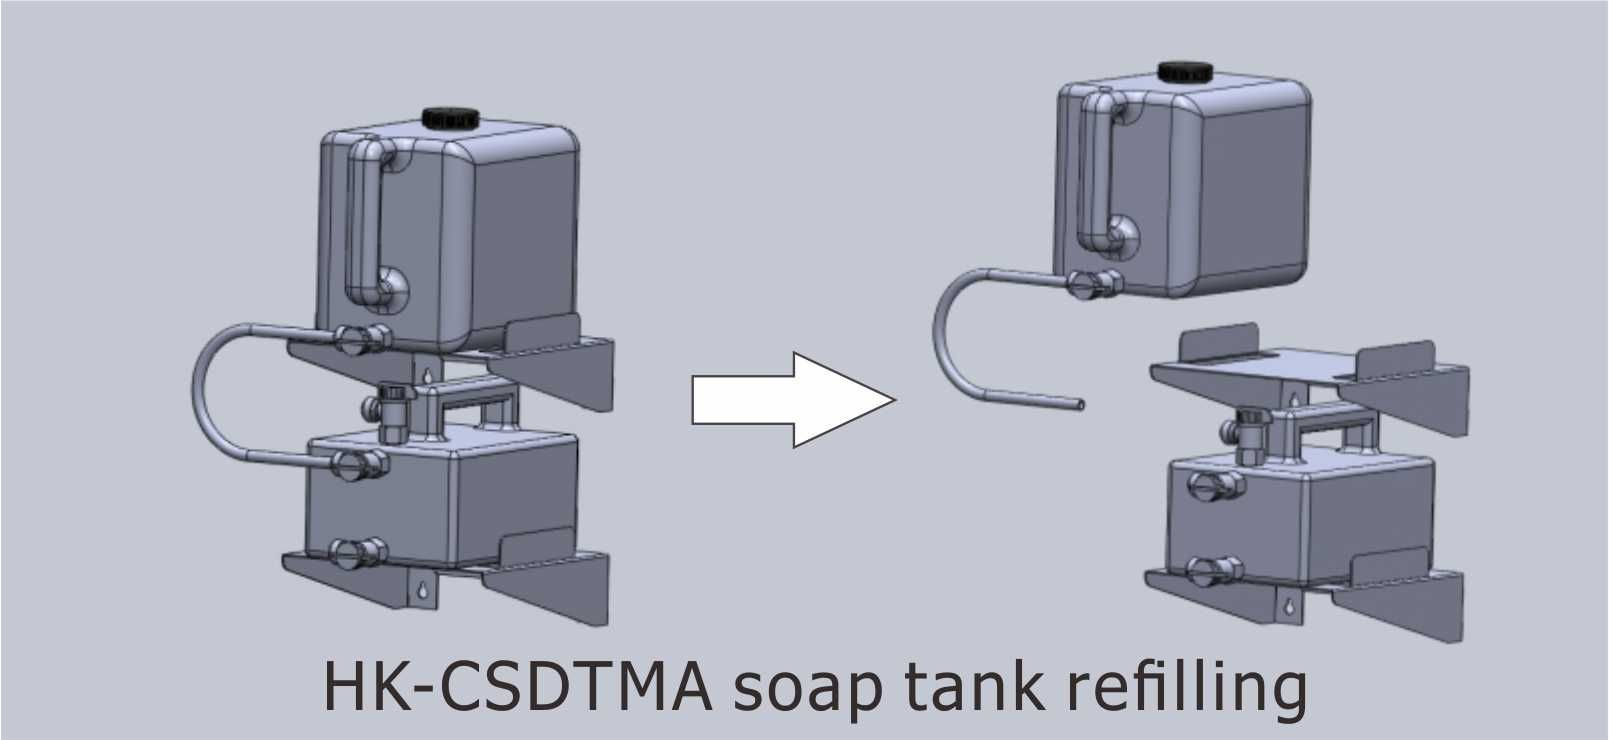 Refilling top soap tank without interrupting the soap dispensing services